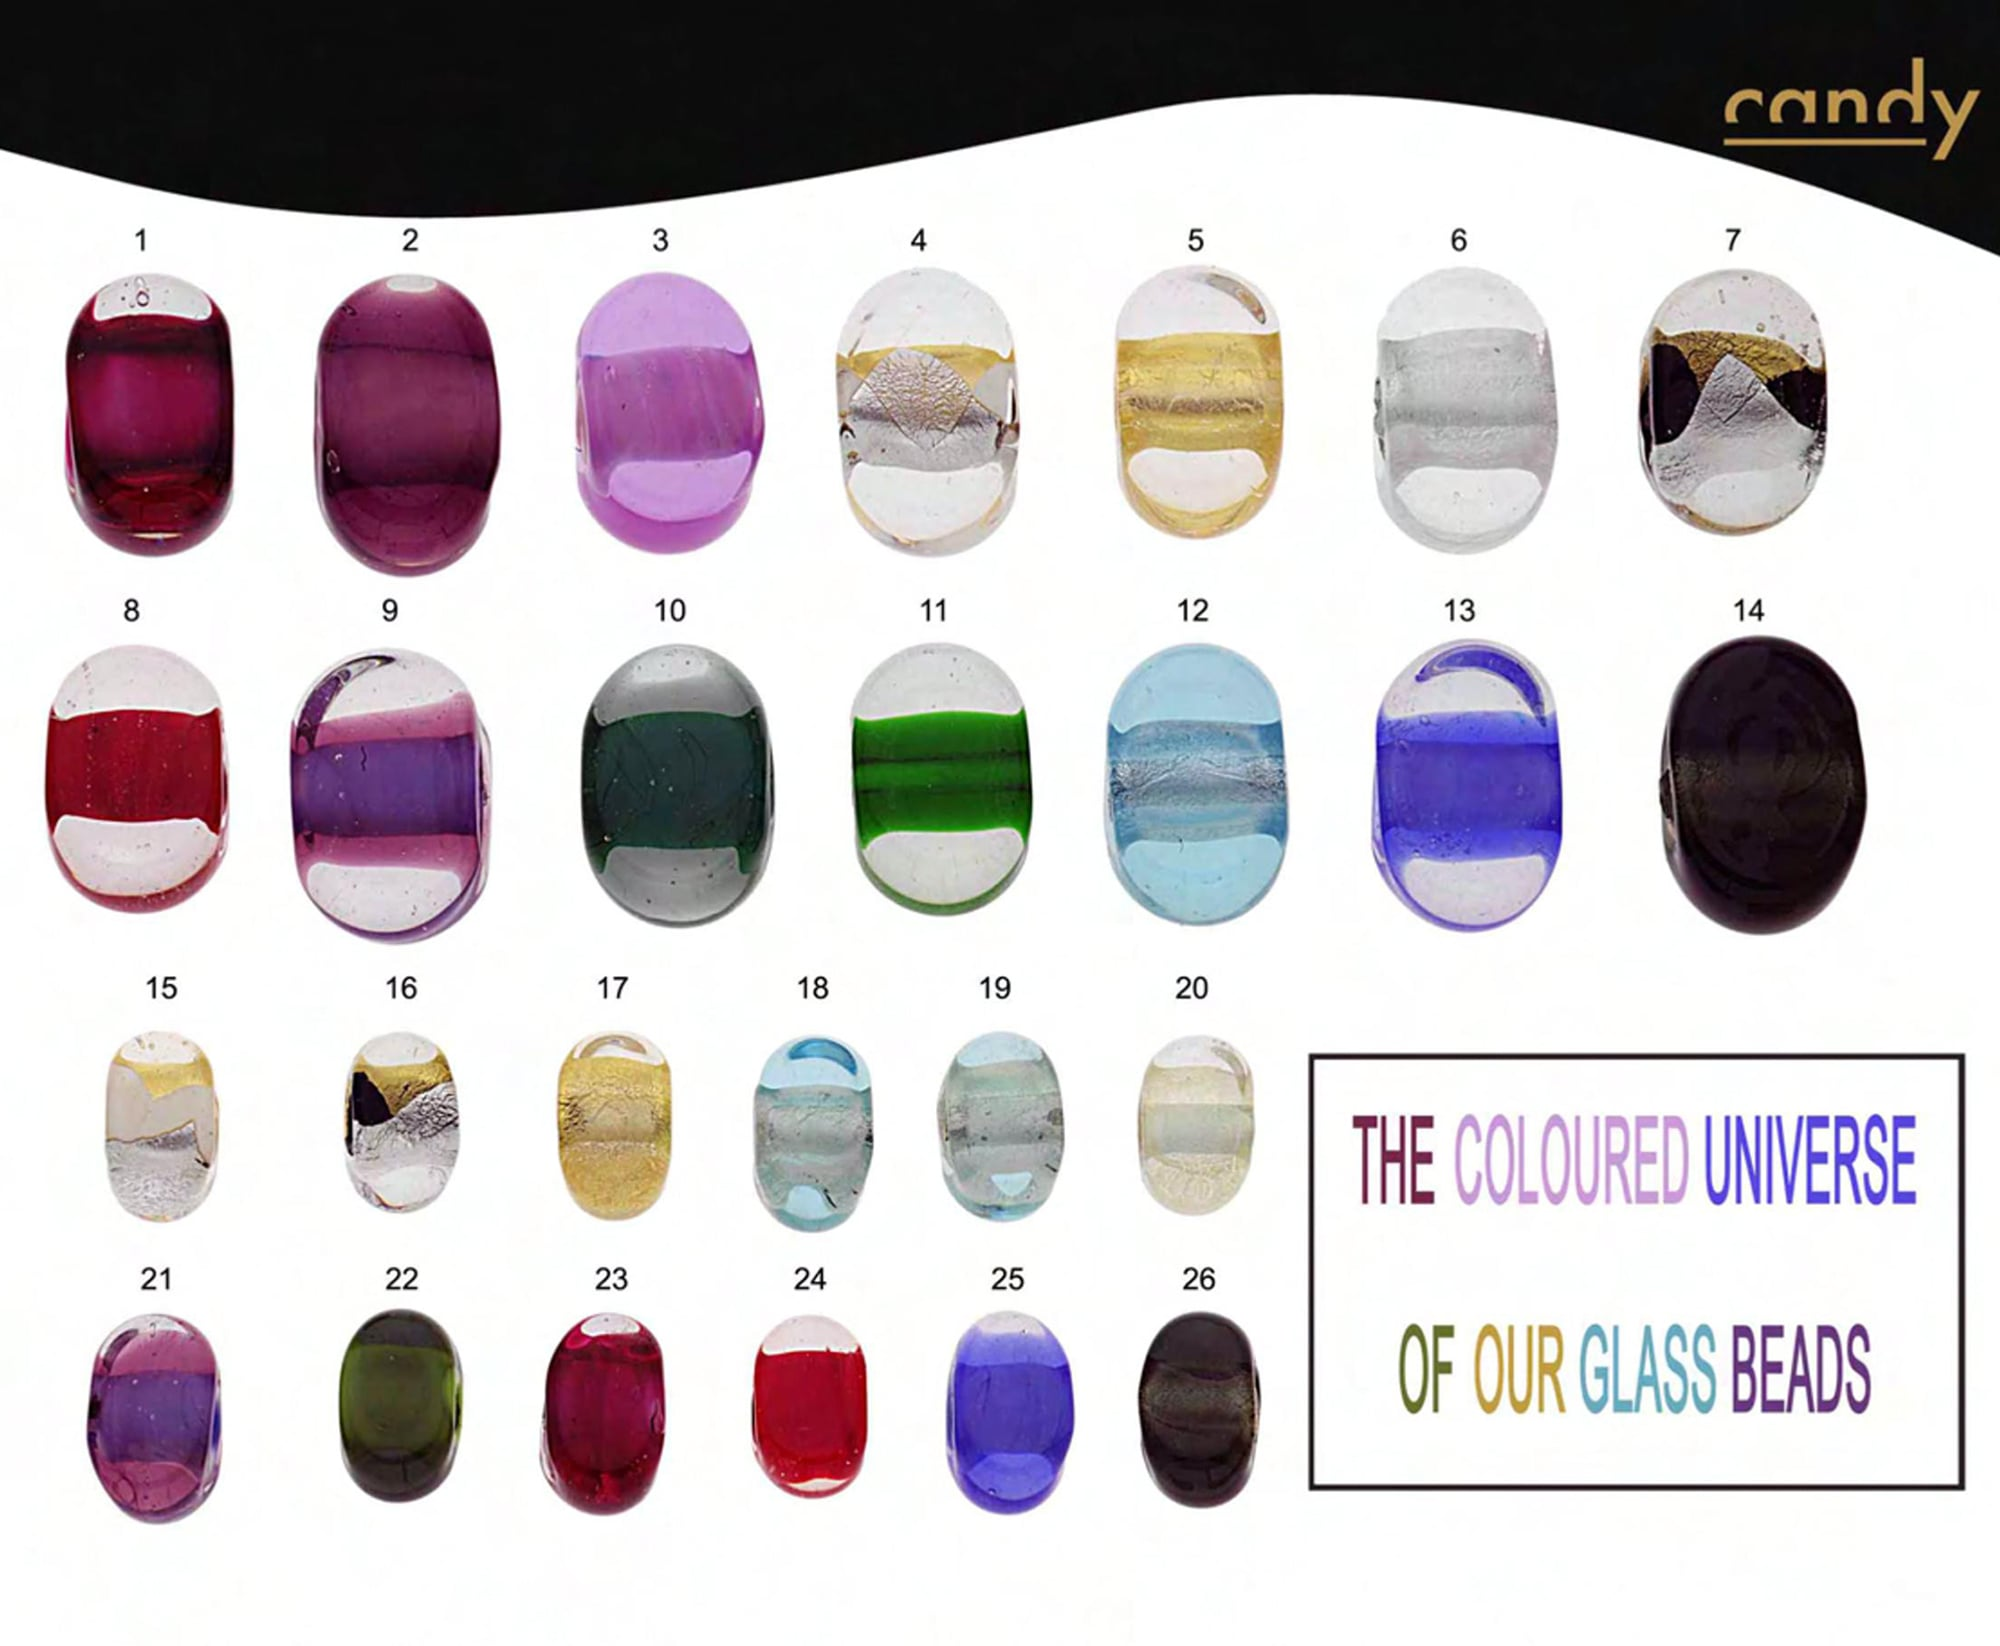 Candies colors availability